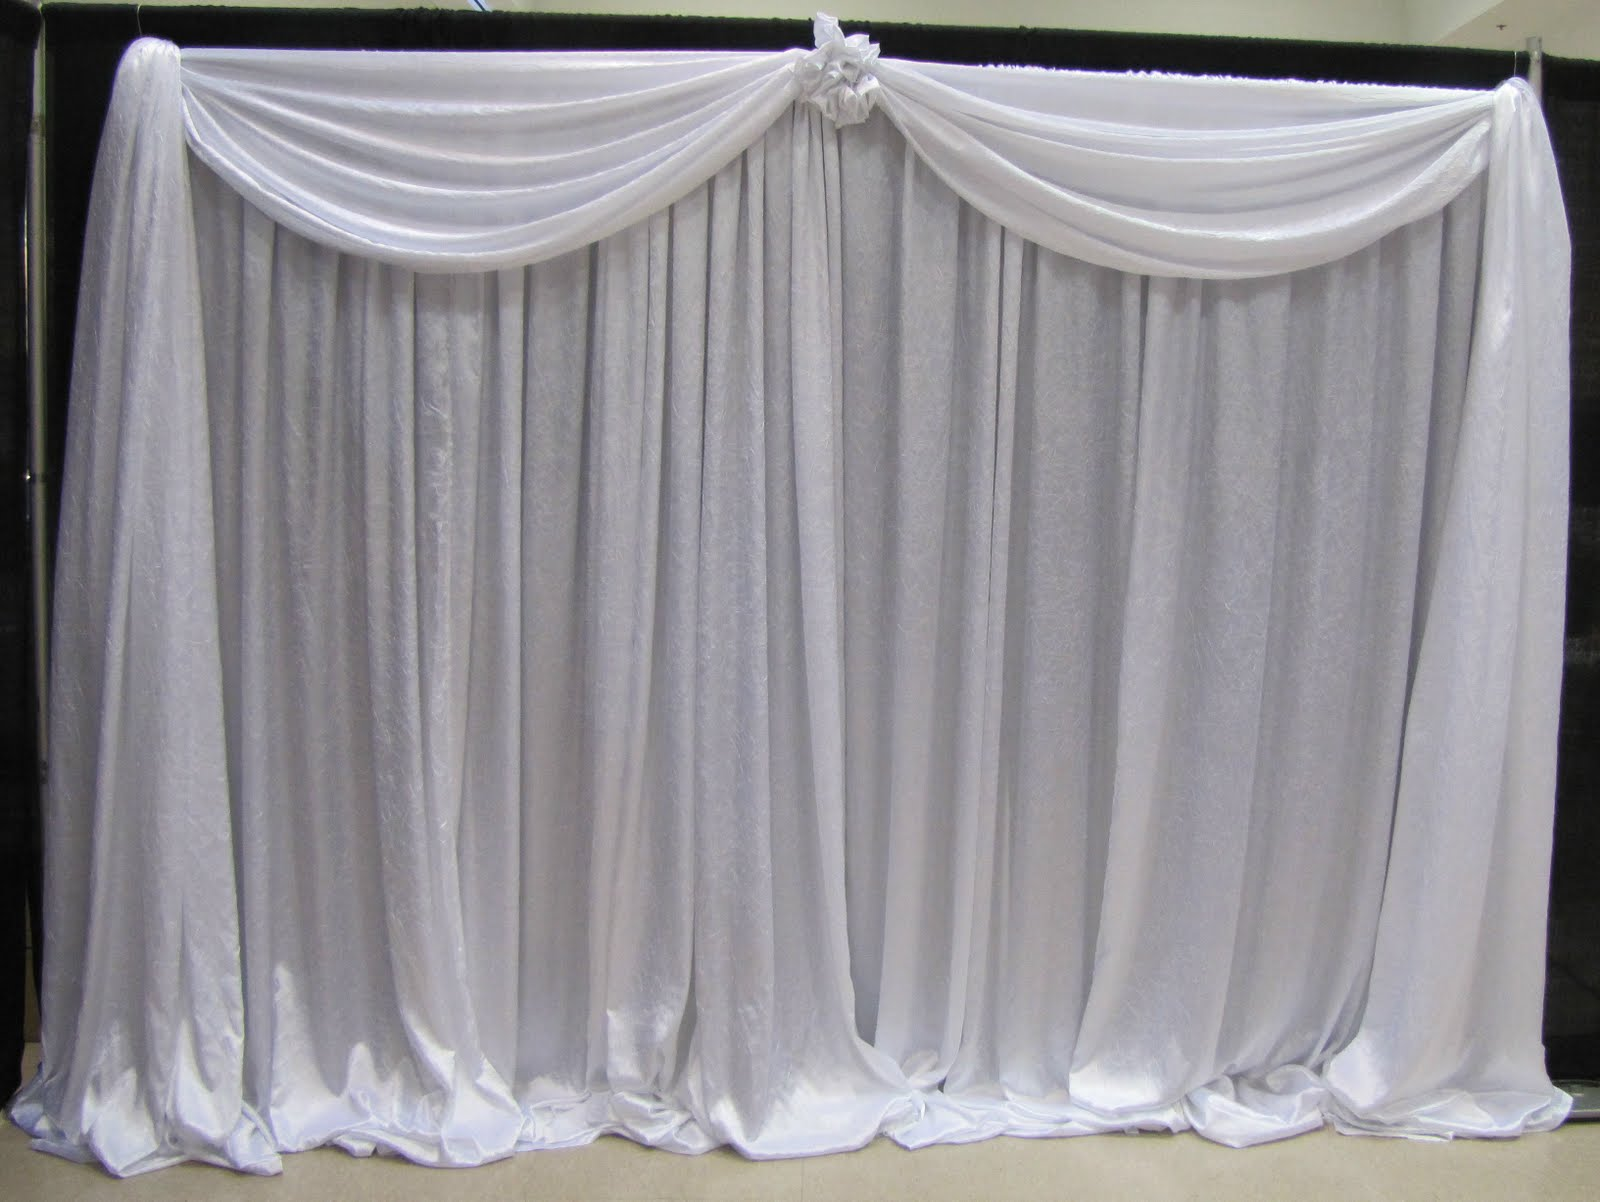 Backdrop curtains : Furniture Ideas | DeltaAngelGroup on Draping Curtains Ideas  id=78157